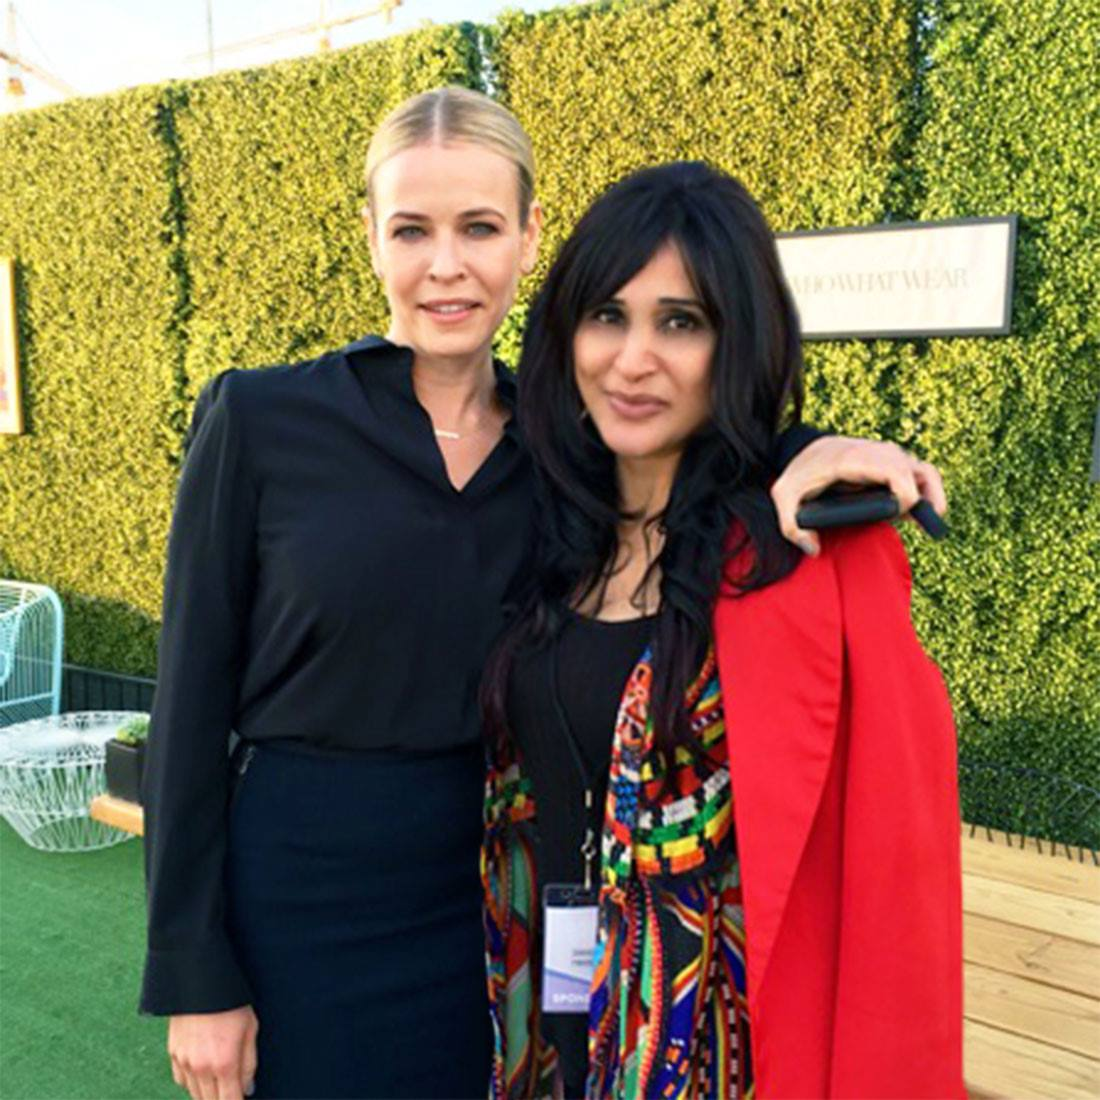 shahida-parides-with-chelsea-handler-at-create-and-cultivate-2016